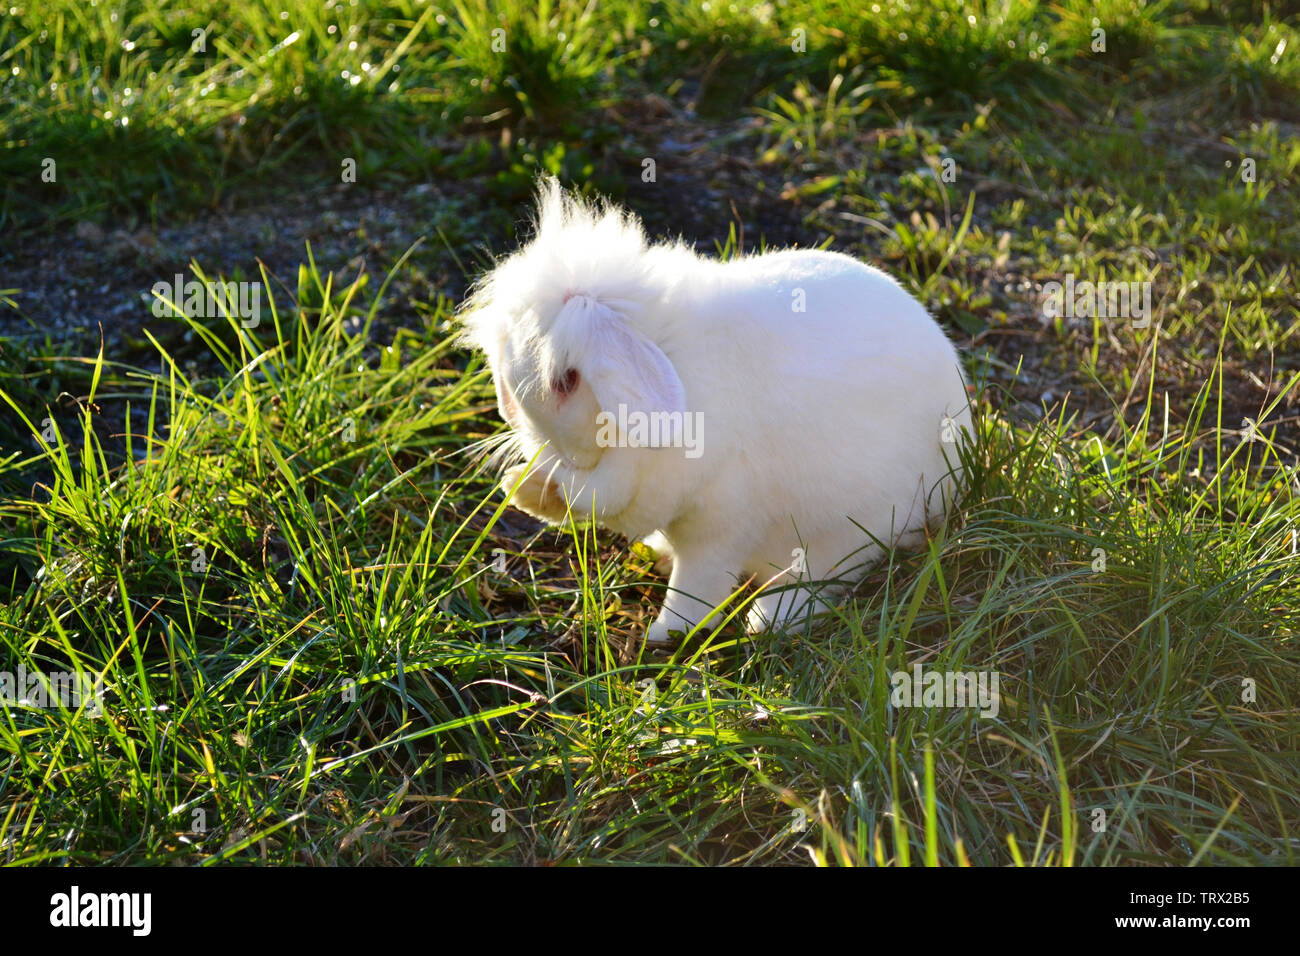 White fluffy lovely nano rabbit washing its face sitting on green grass meadow under the sun. Stock Photo